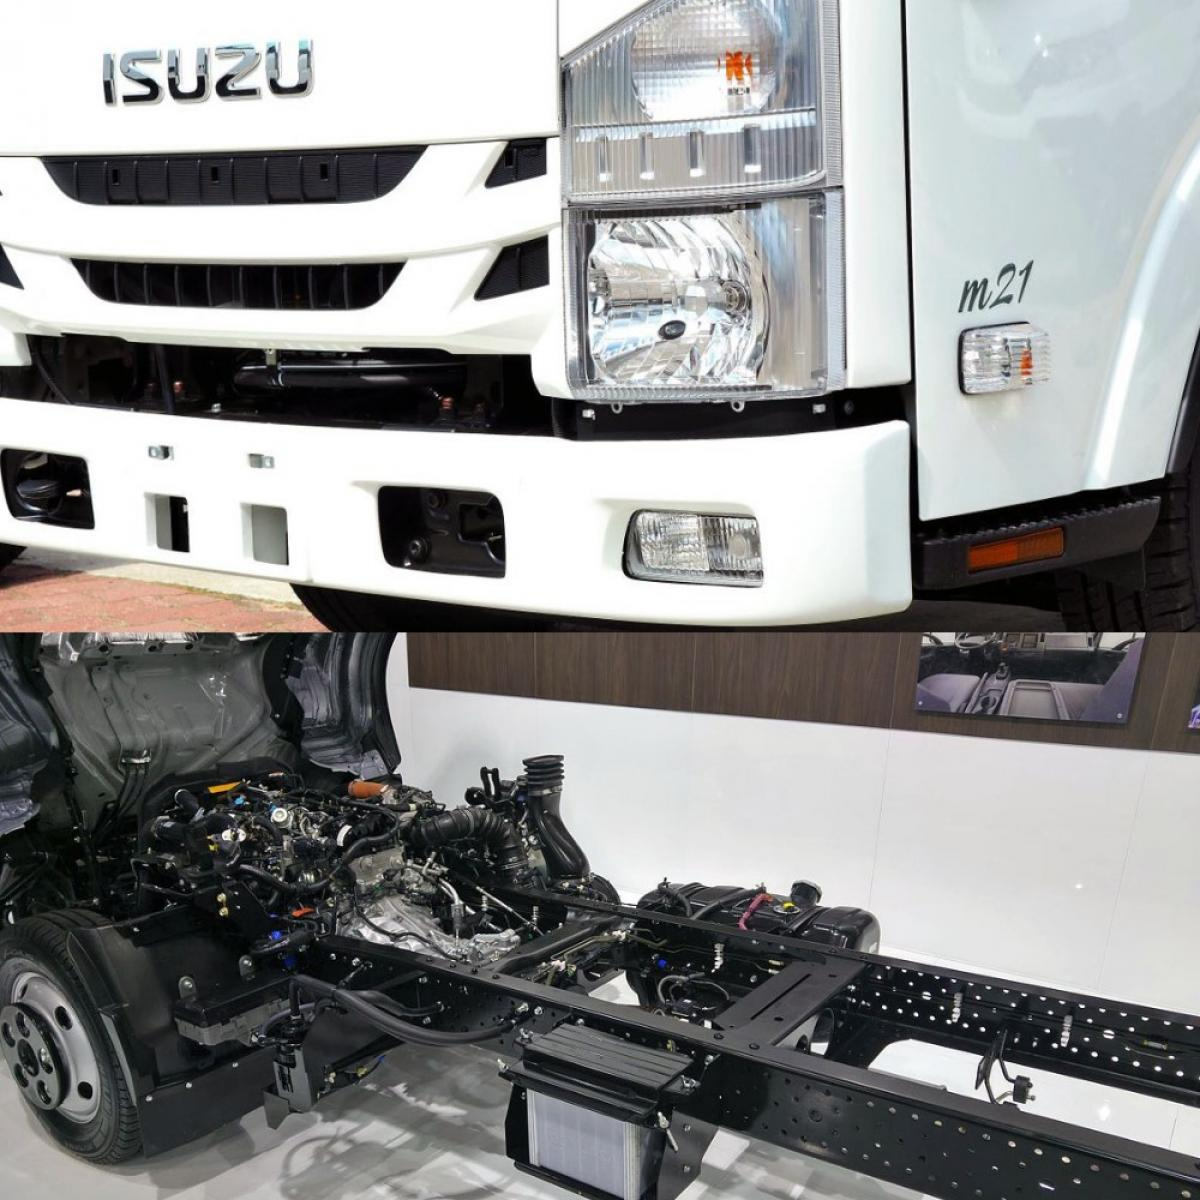 Isuzu M21 Ground Sicurezza